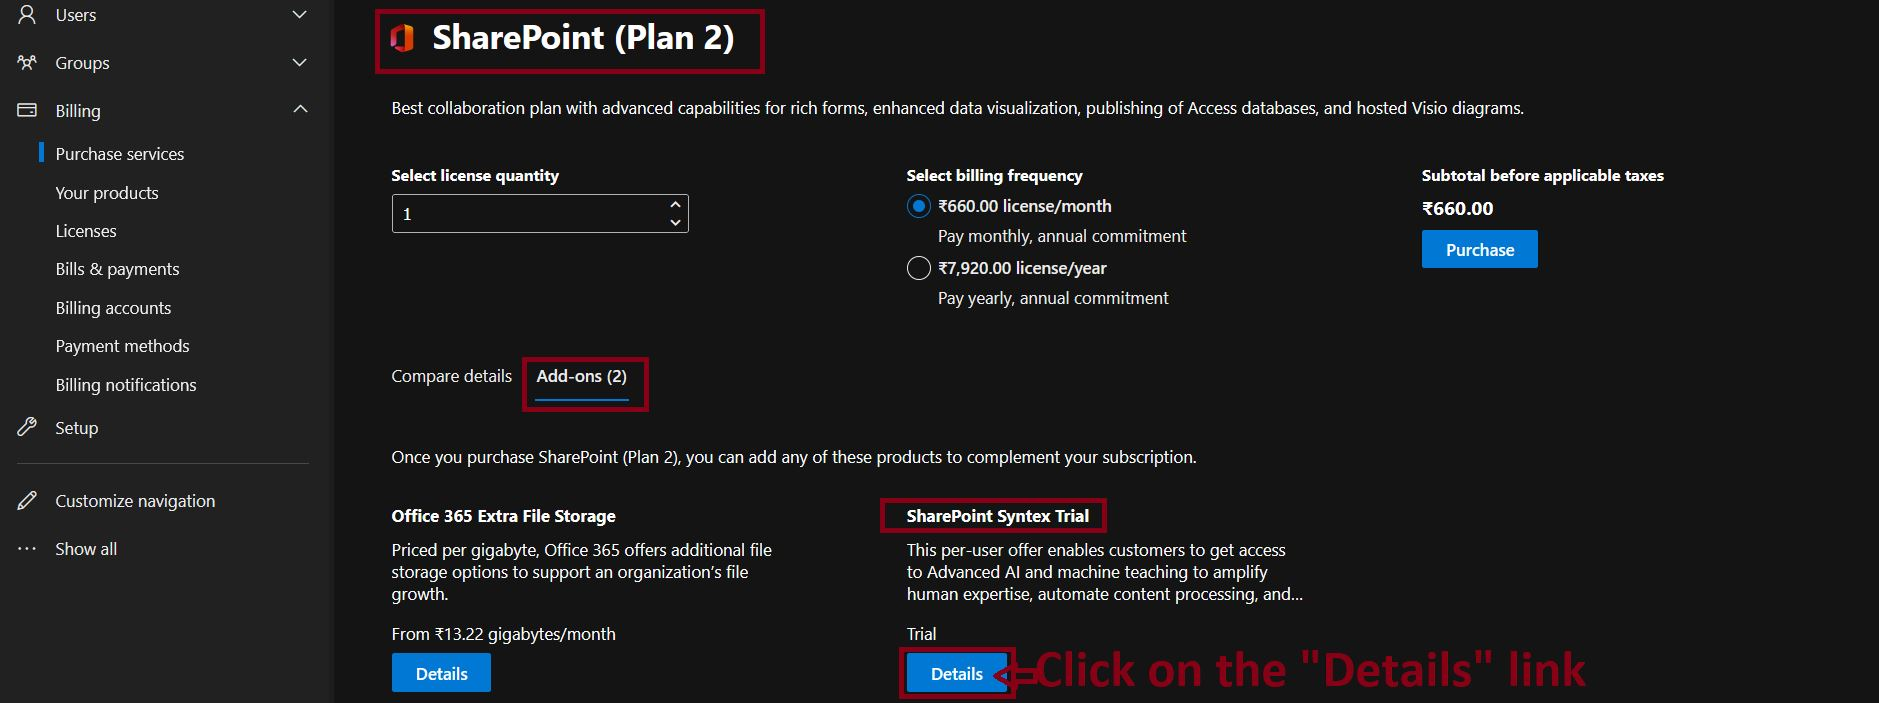 SharePoint Syntex Trial Add-in - SharePoint Plan 2